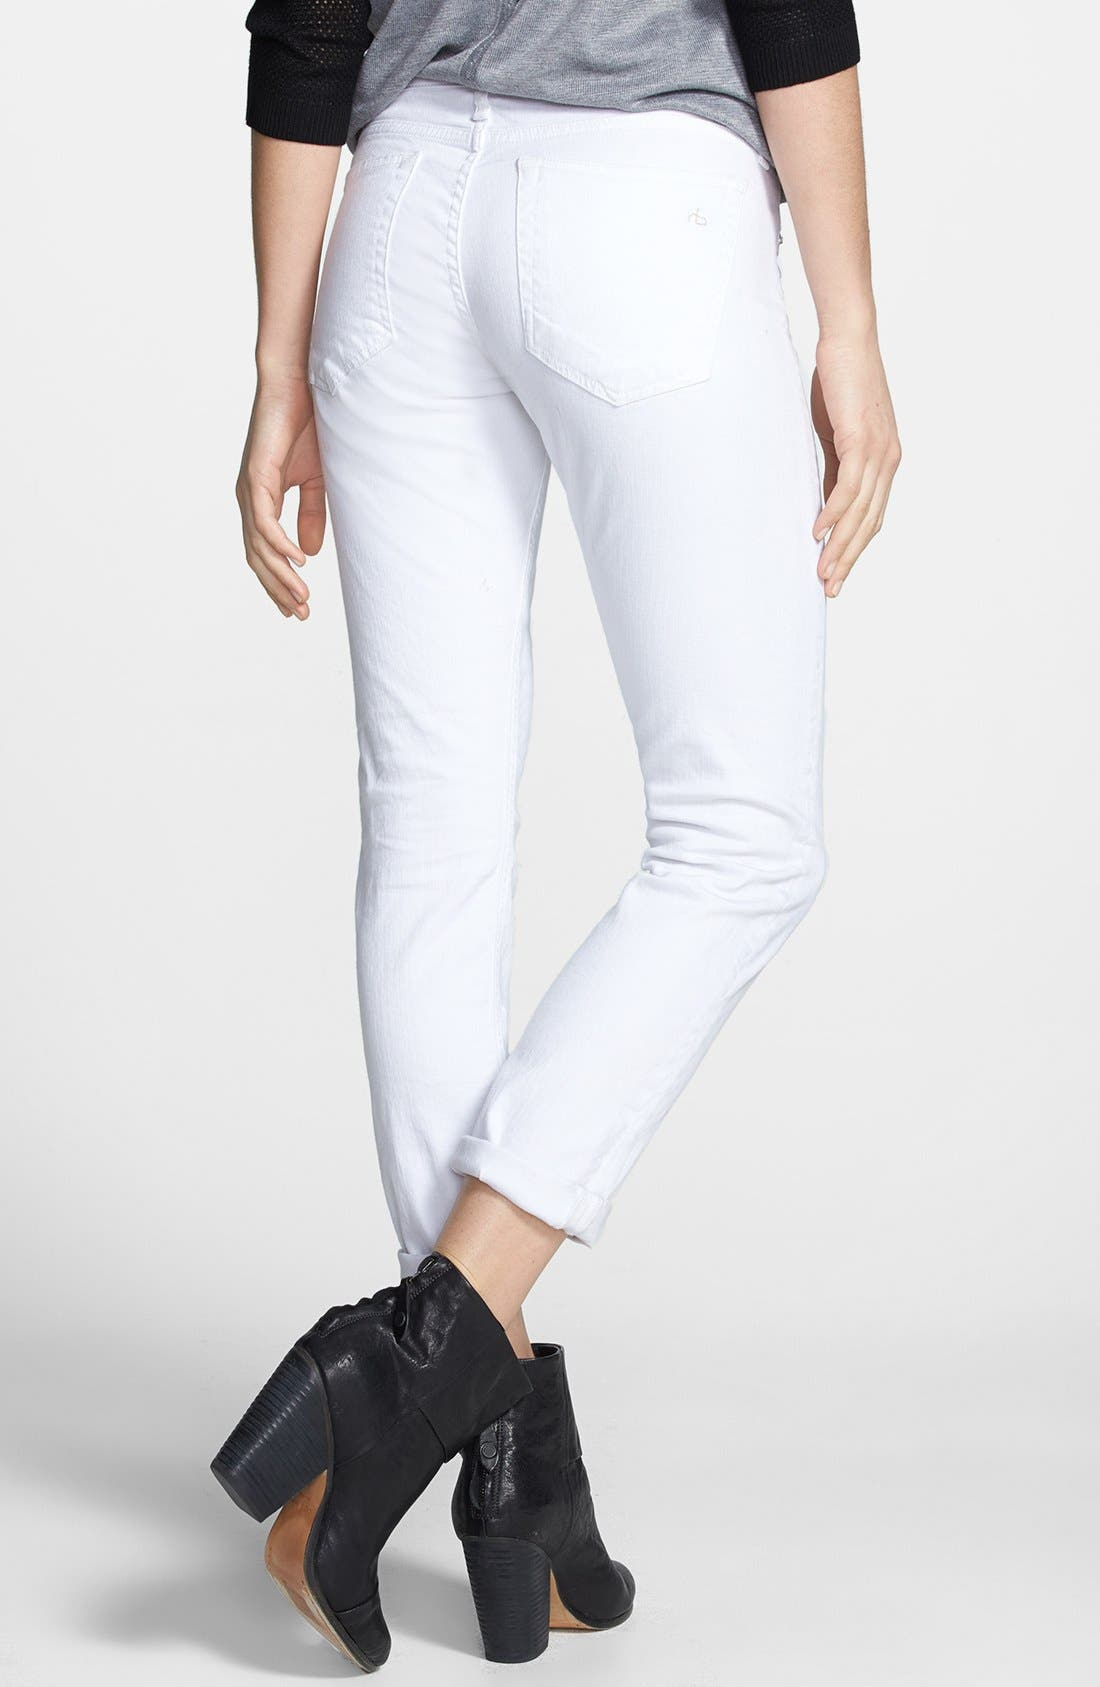 RAG & BONE, 'The Dre' Skinny Jeans, Alternate thumbnail 8, color, BRIGHT WHITE